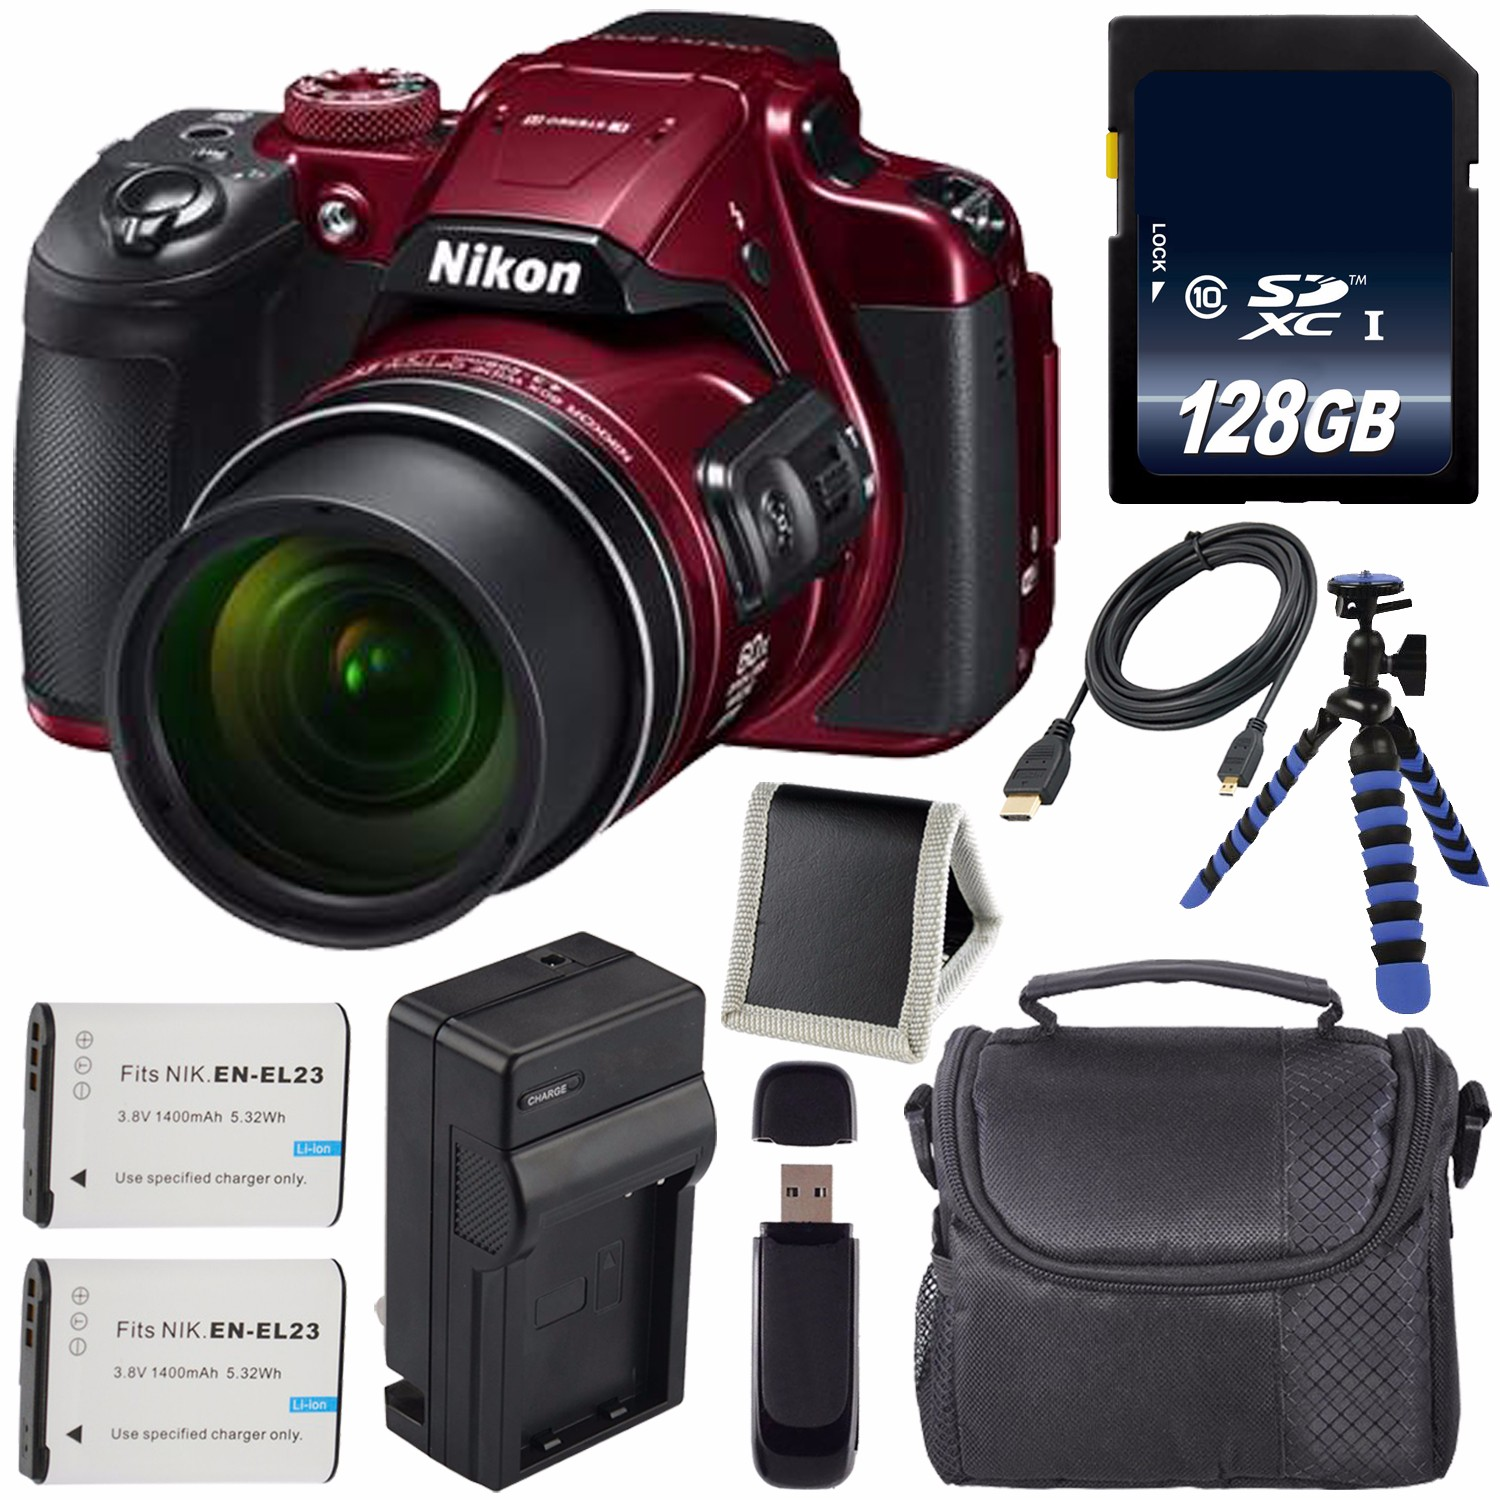 Nikon COOLPIX B700 Digital Camera (Red) International Model + EN-EL23 Replacement Li-on Battery + External Rapid Charger + 128GB SDXC Class 10 Memory CardFlexible Tripod with Gripping Rubber LegBundle